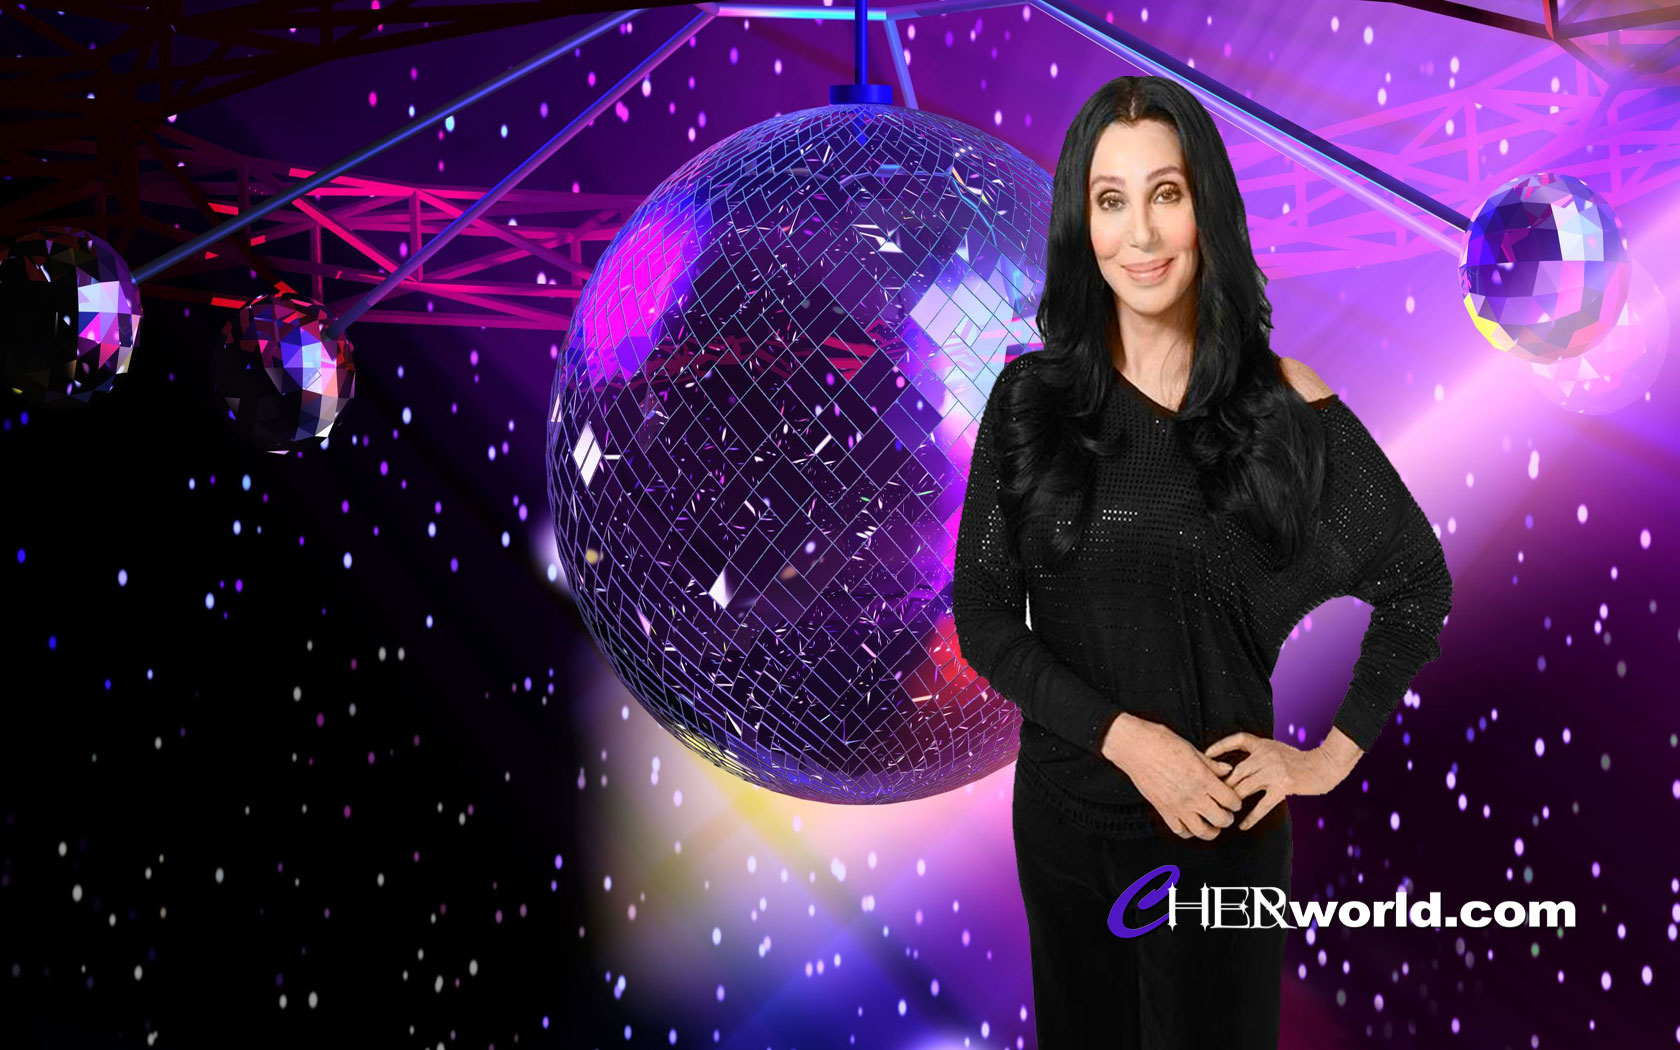 Cher Wallpapers Desktop Background and Themes 1680x1050